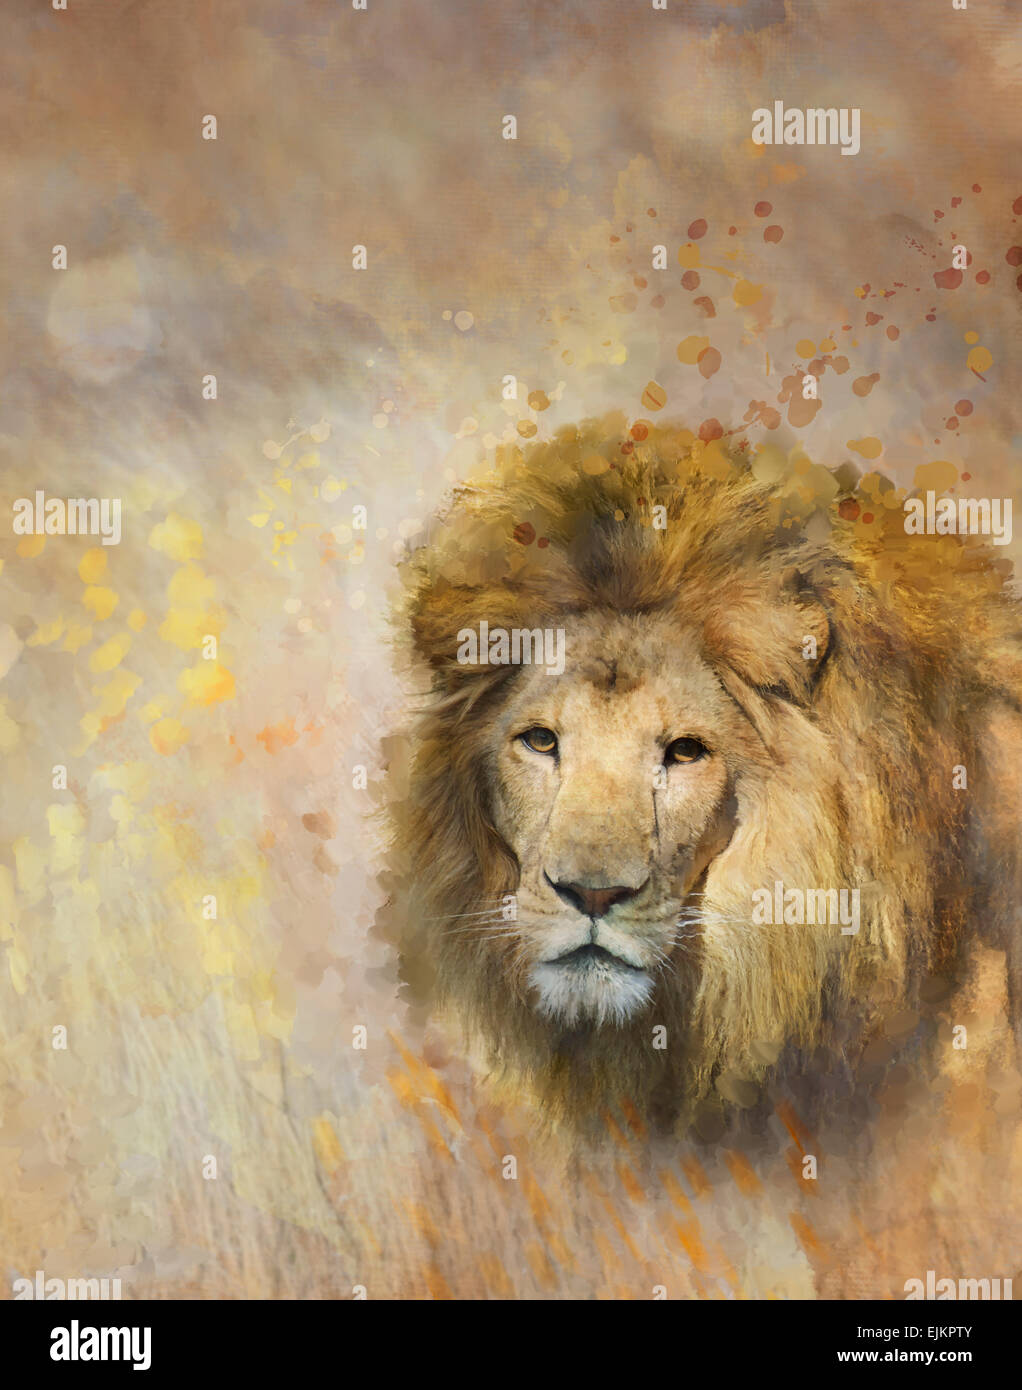 Digital Painting Of African Lion - Stock Image